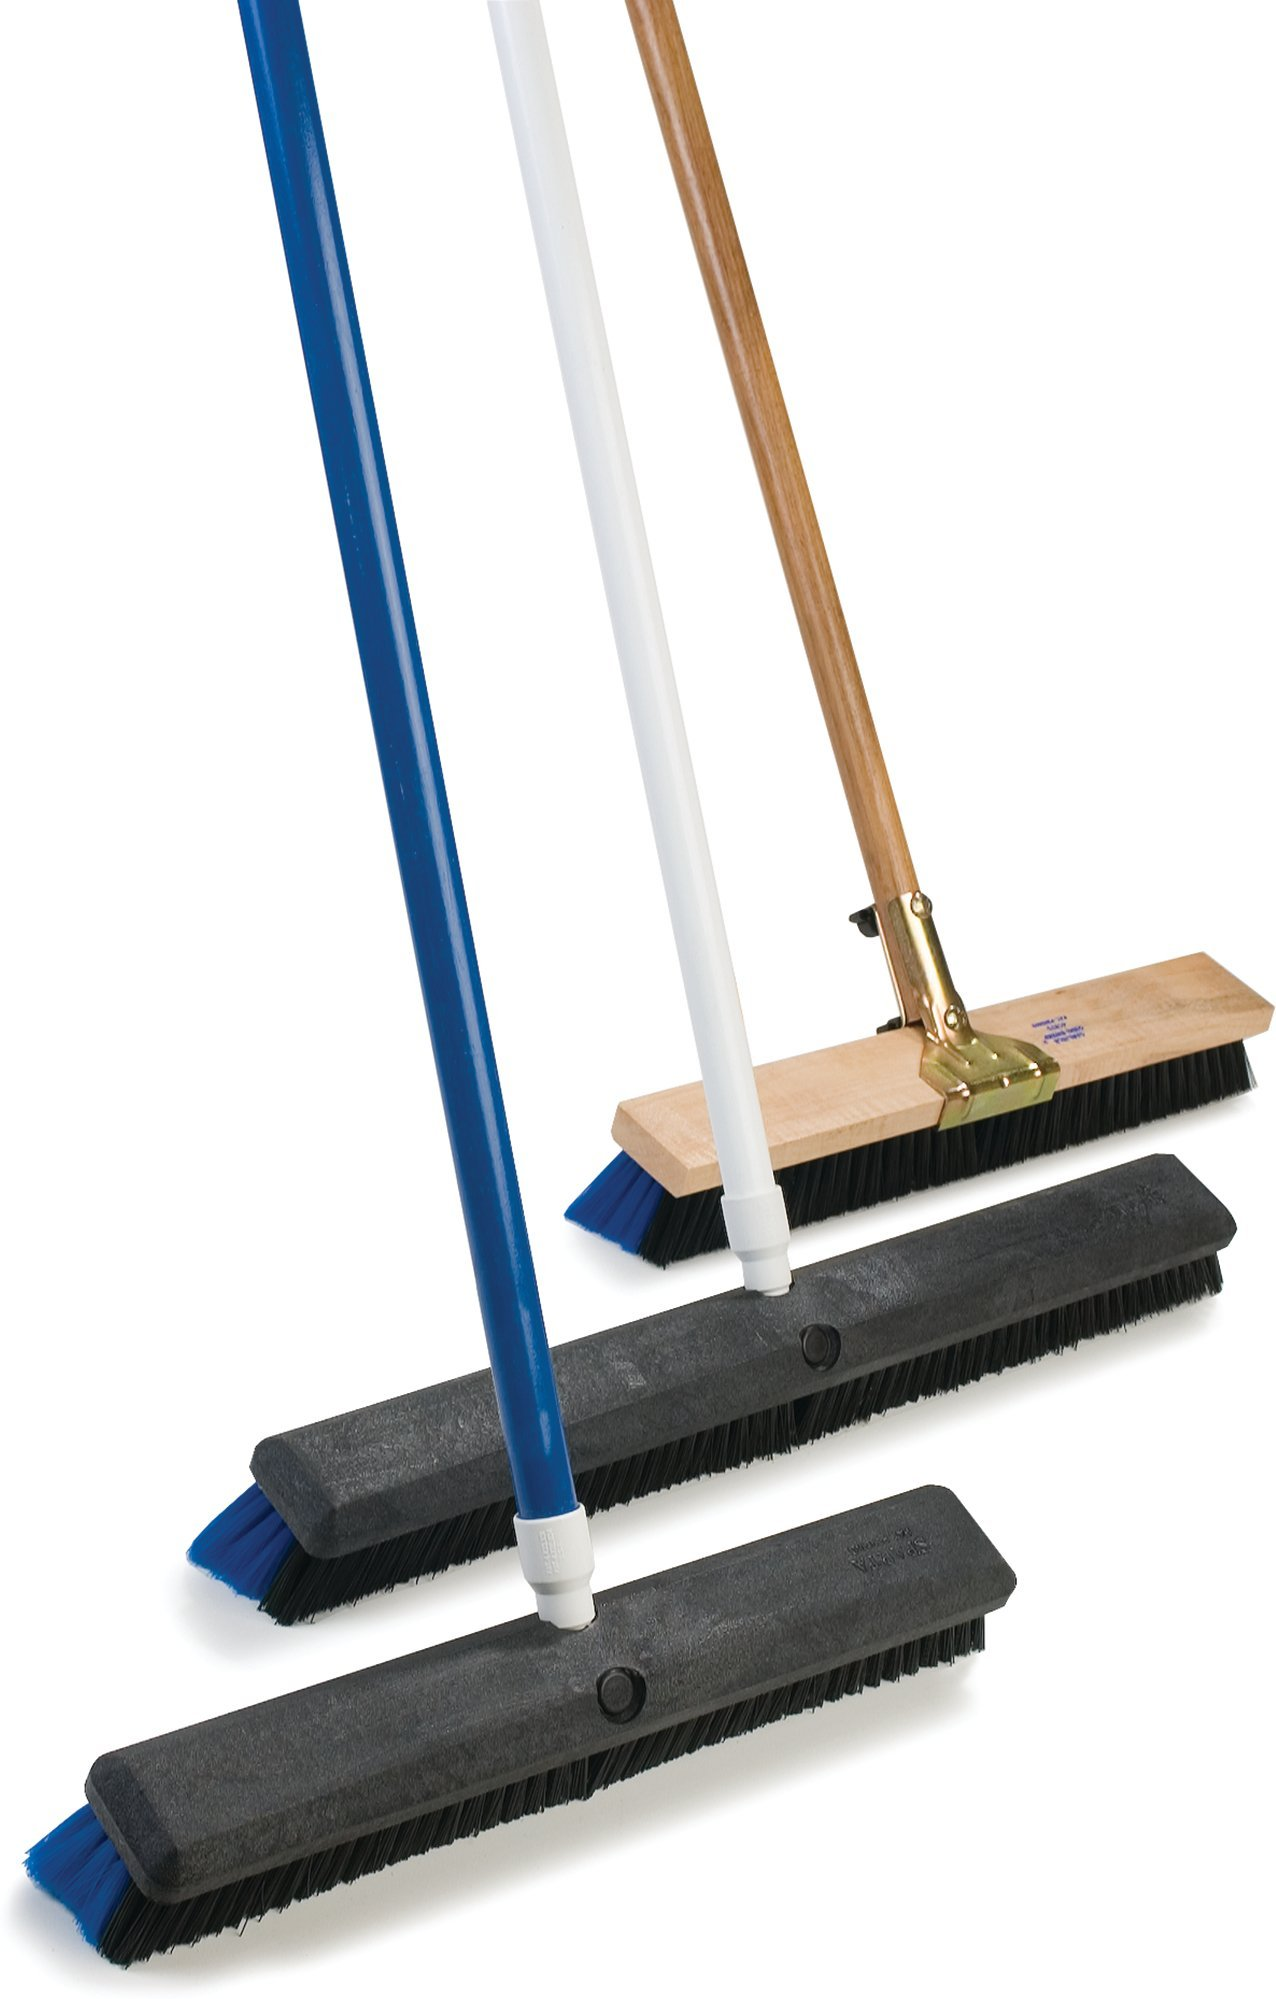 Carlisle 4188100 Sparta Commercial Broom Head, 24'' (Pack of 12) by Carlisle (Image #7)